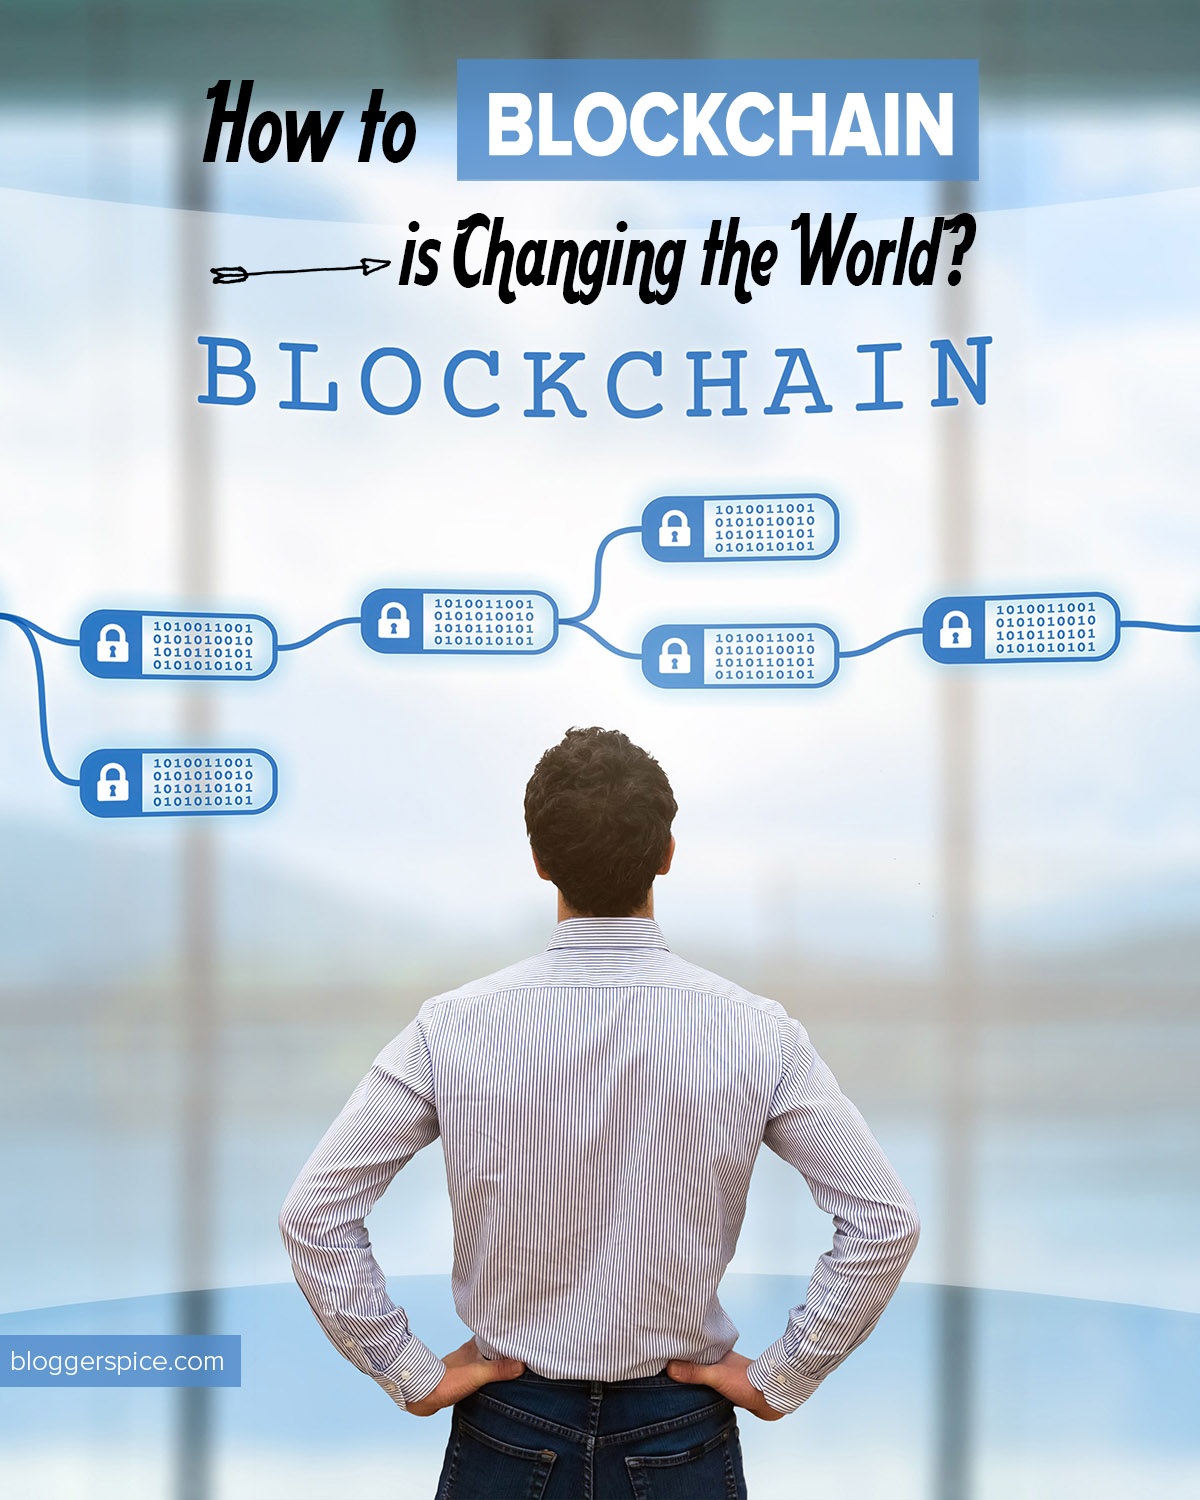 6 Unexpected Ways Blockchain Is Changing the World